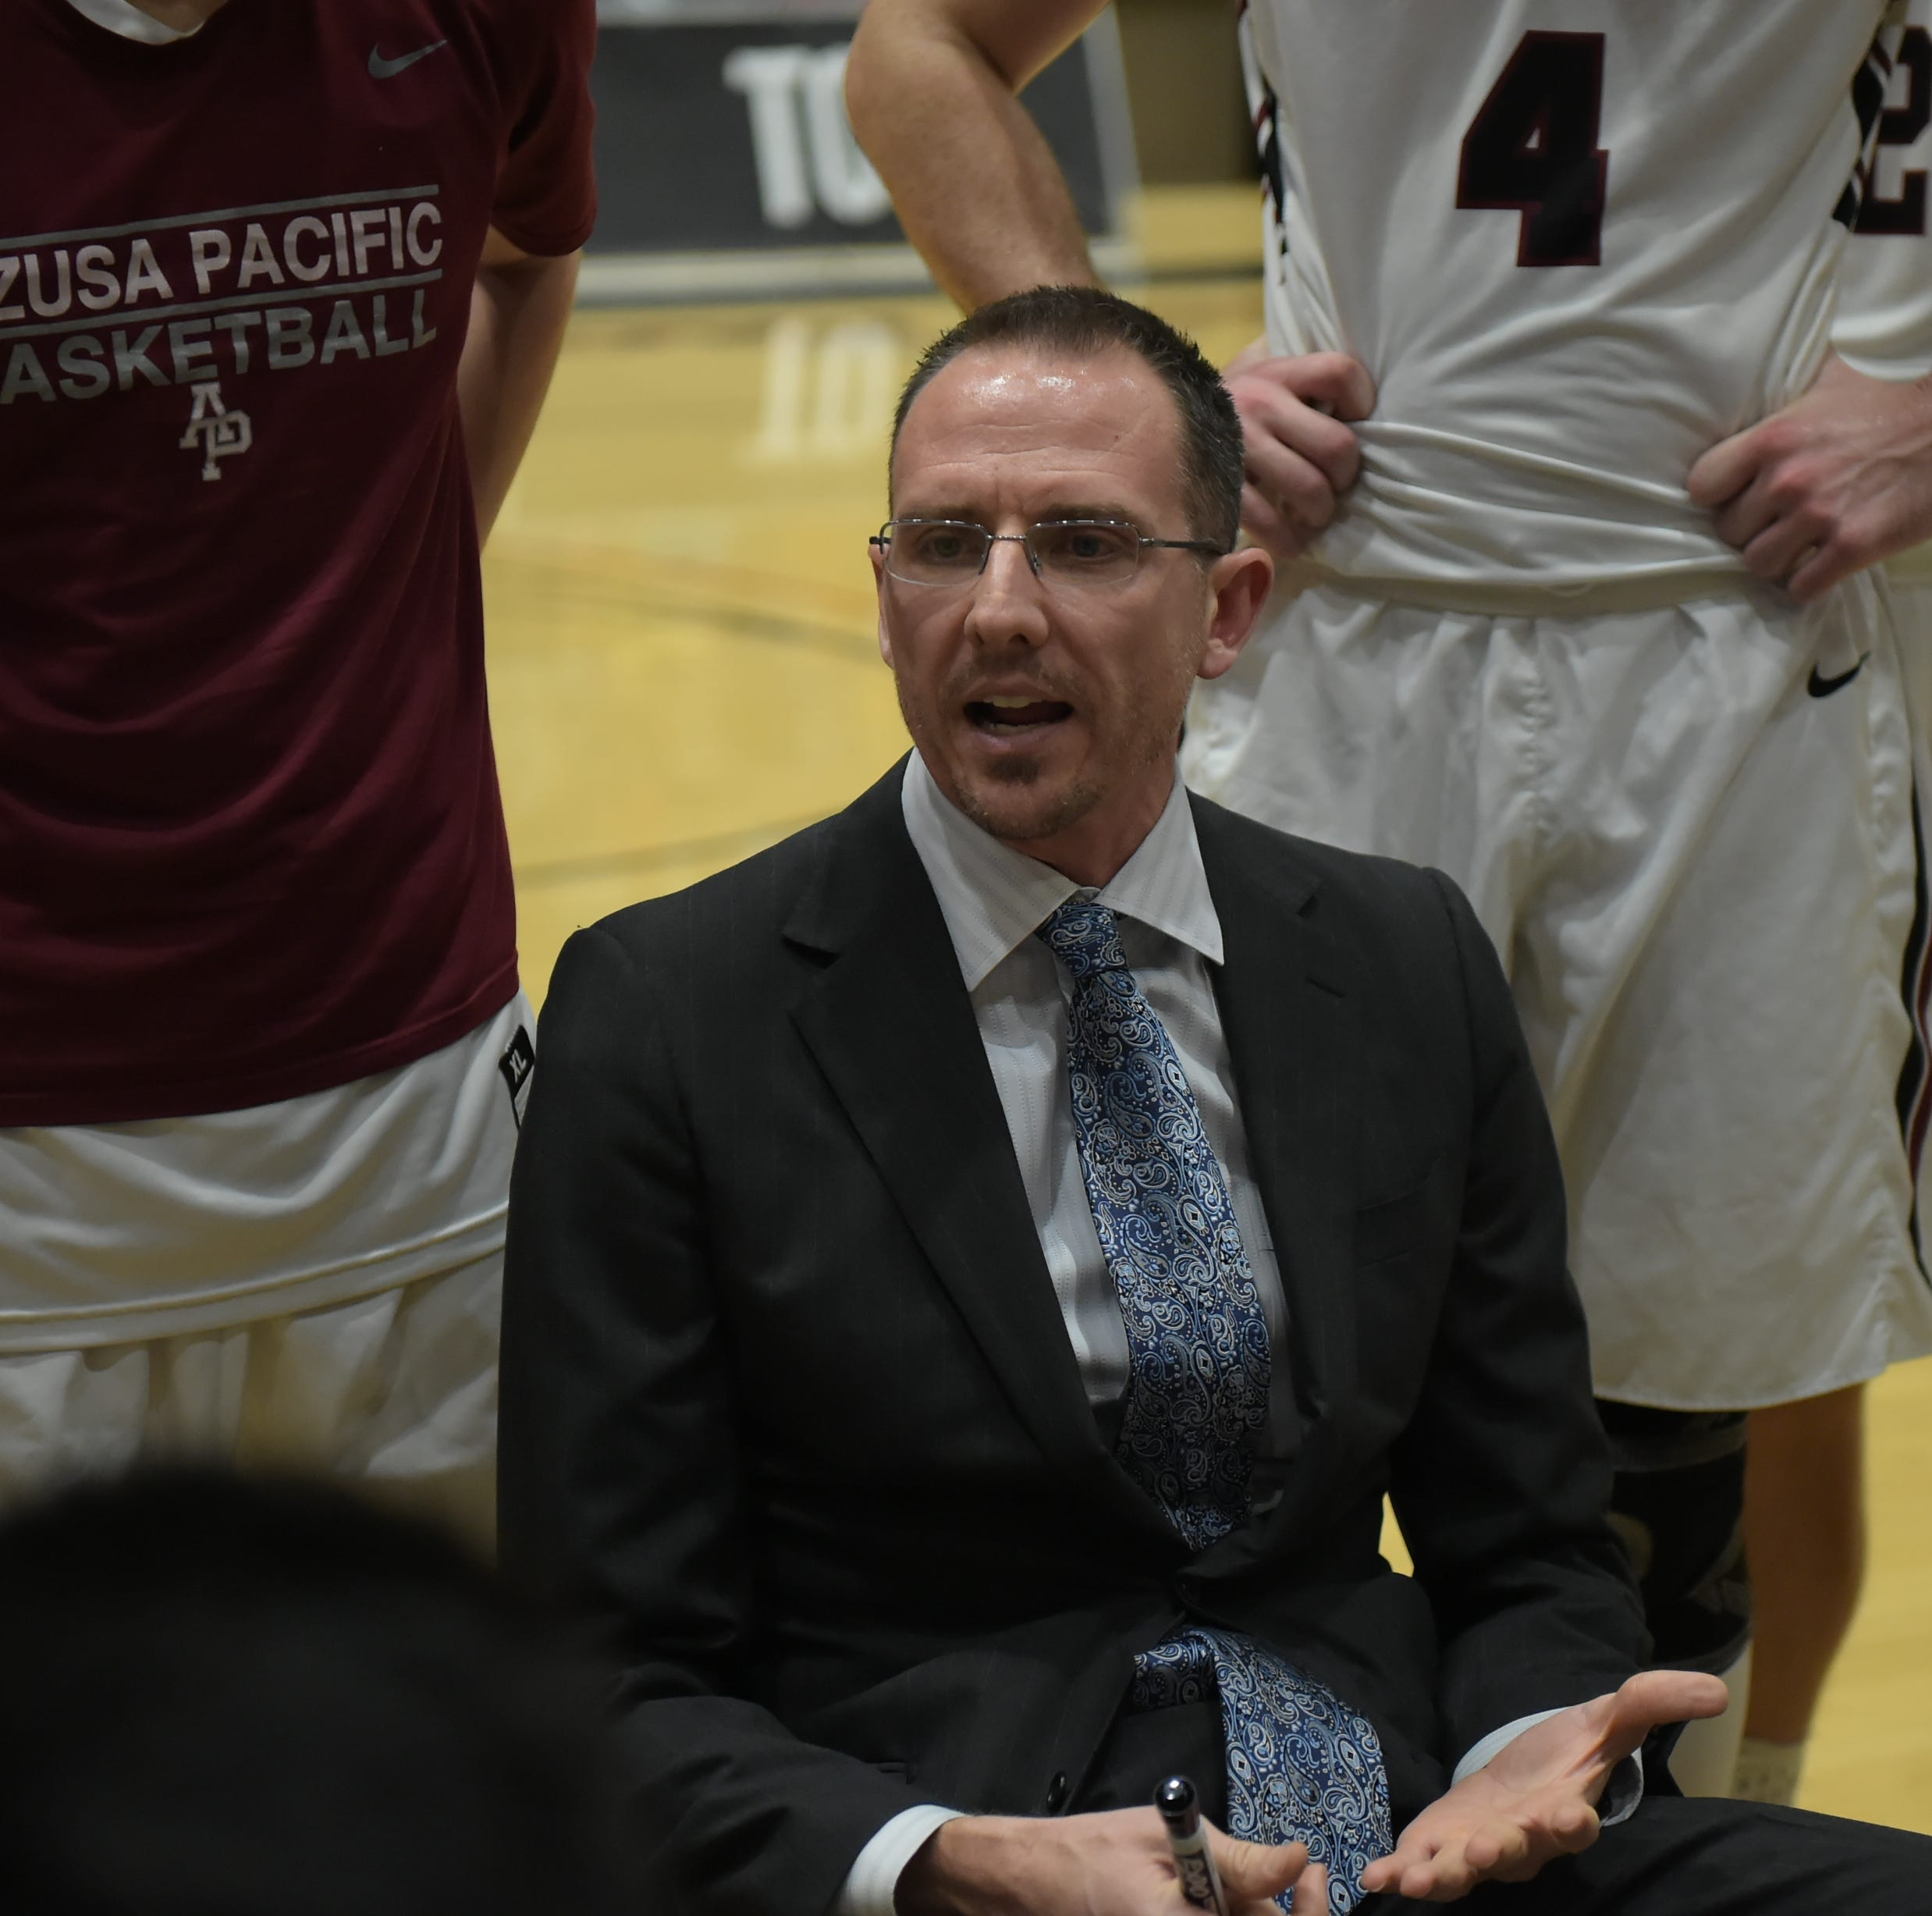 Azusa Pacific's Justin Leslie named Midwestern State's men's basketball coach